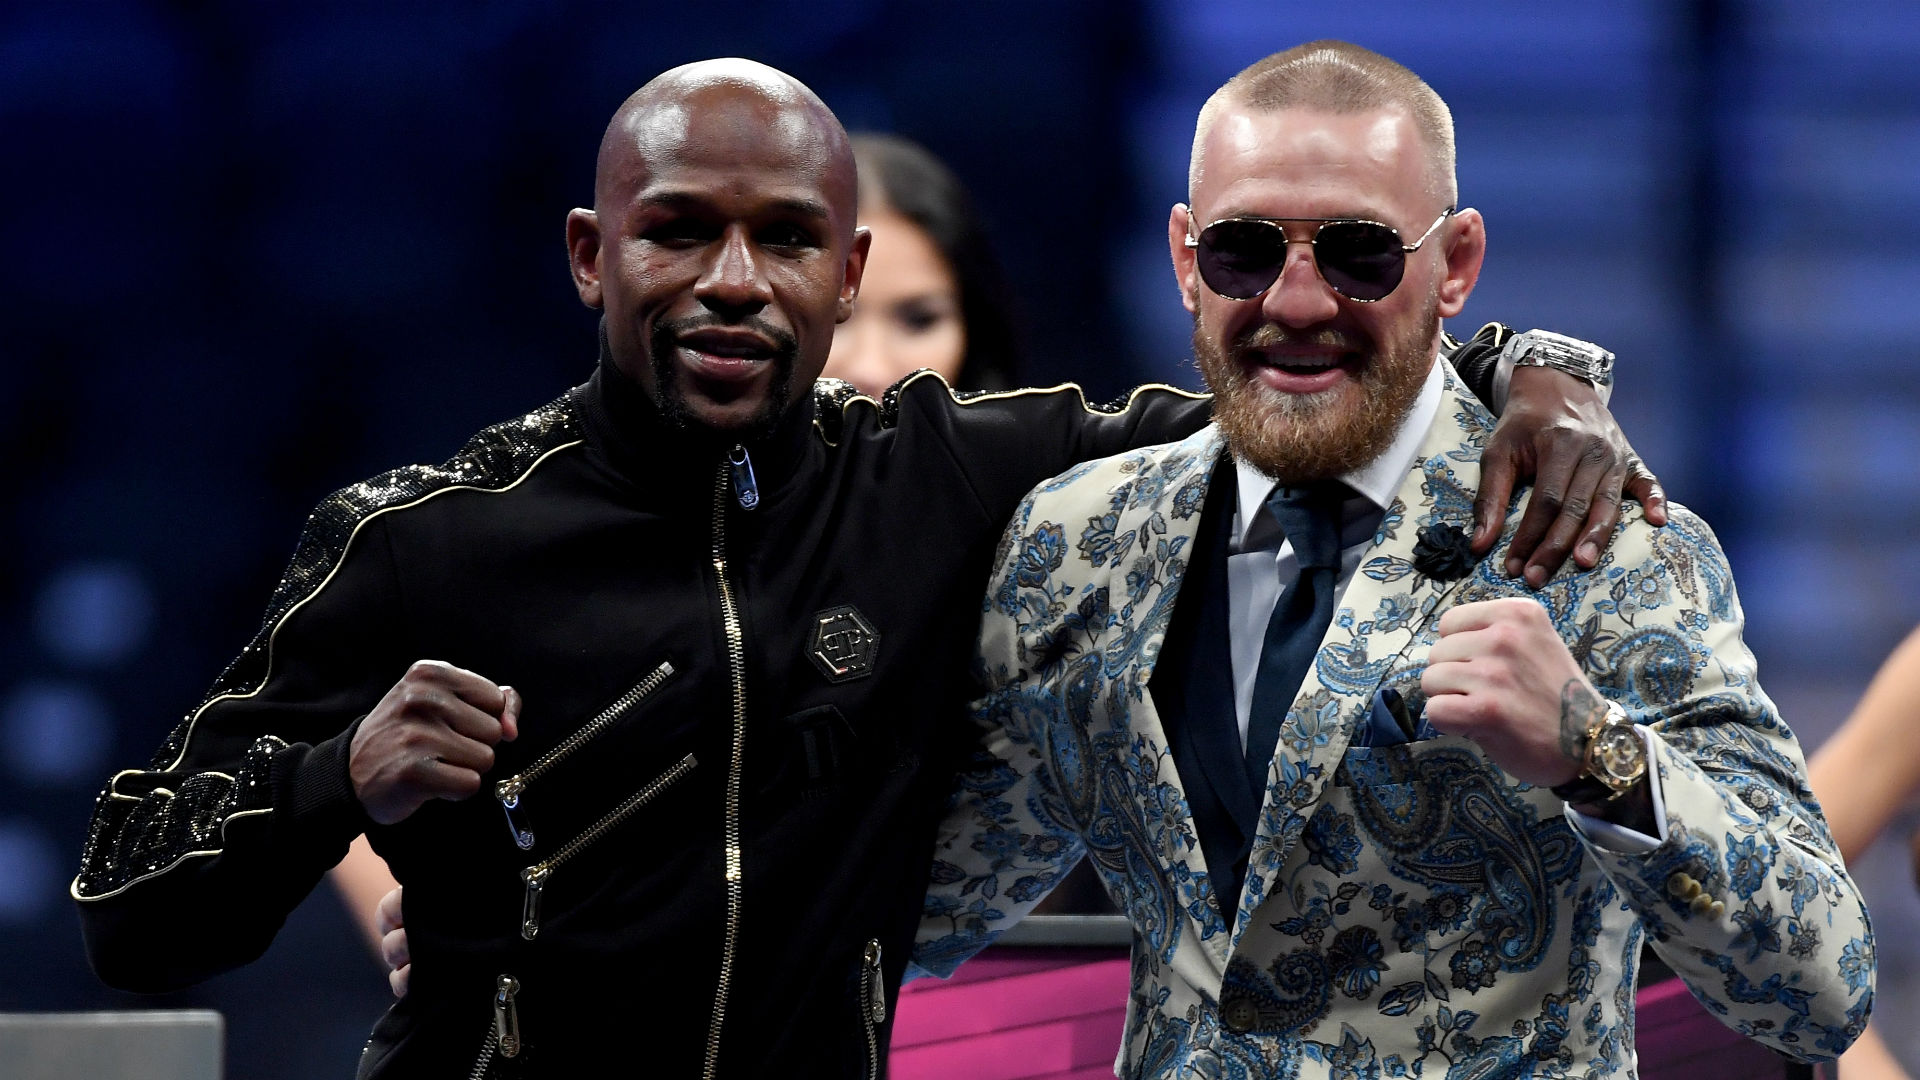 Floyd Mayweather teases potential UFC bout